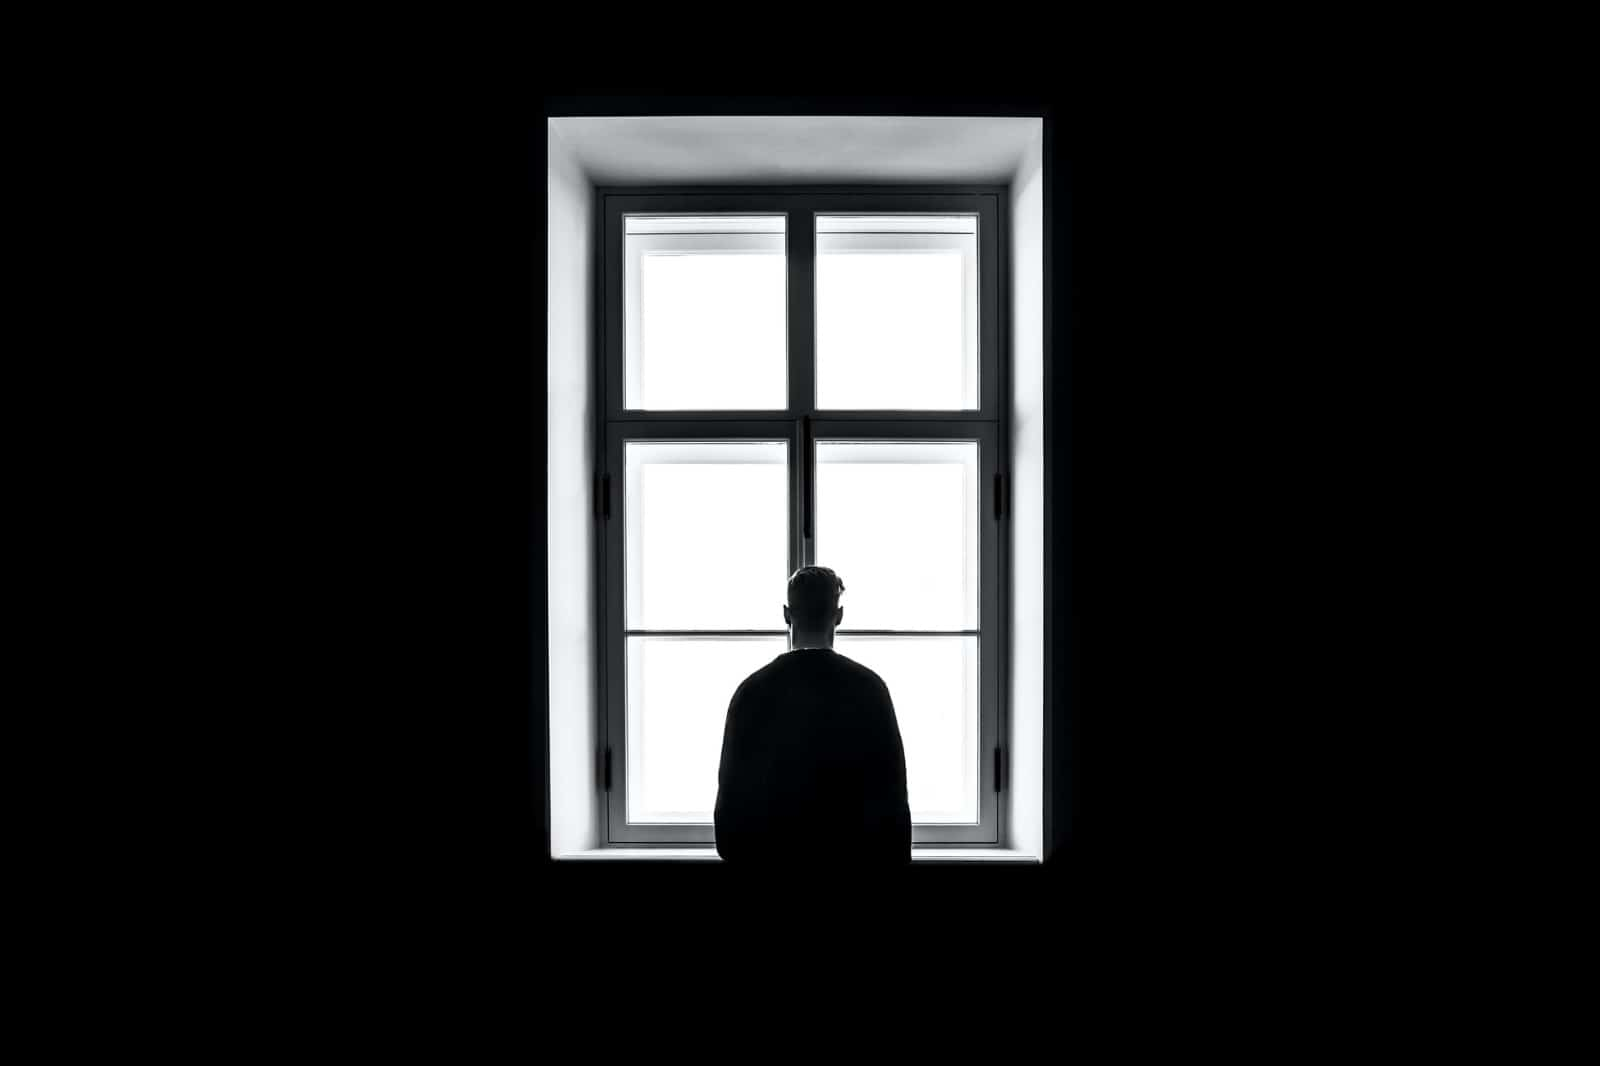 Man with depression looking at the window